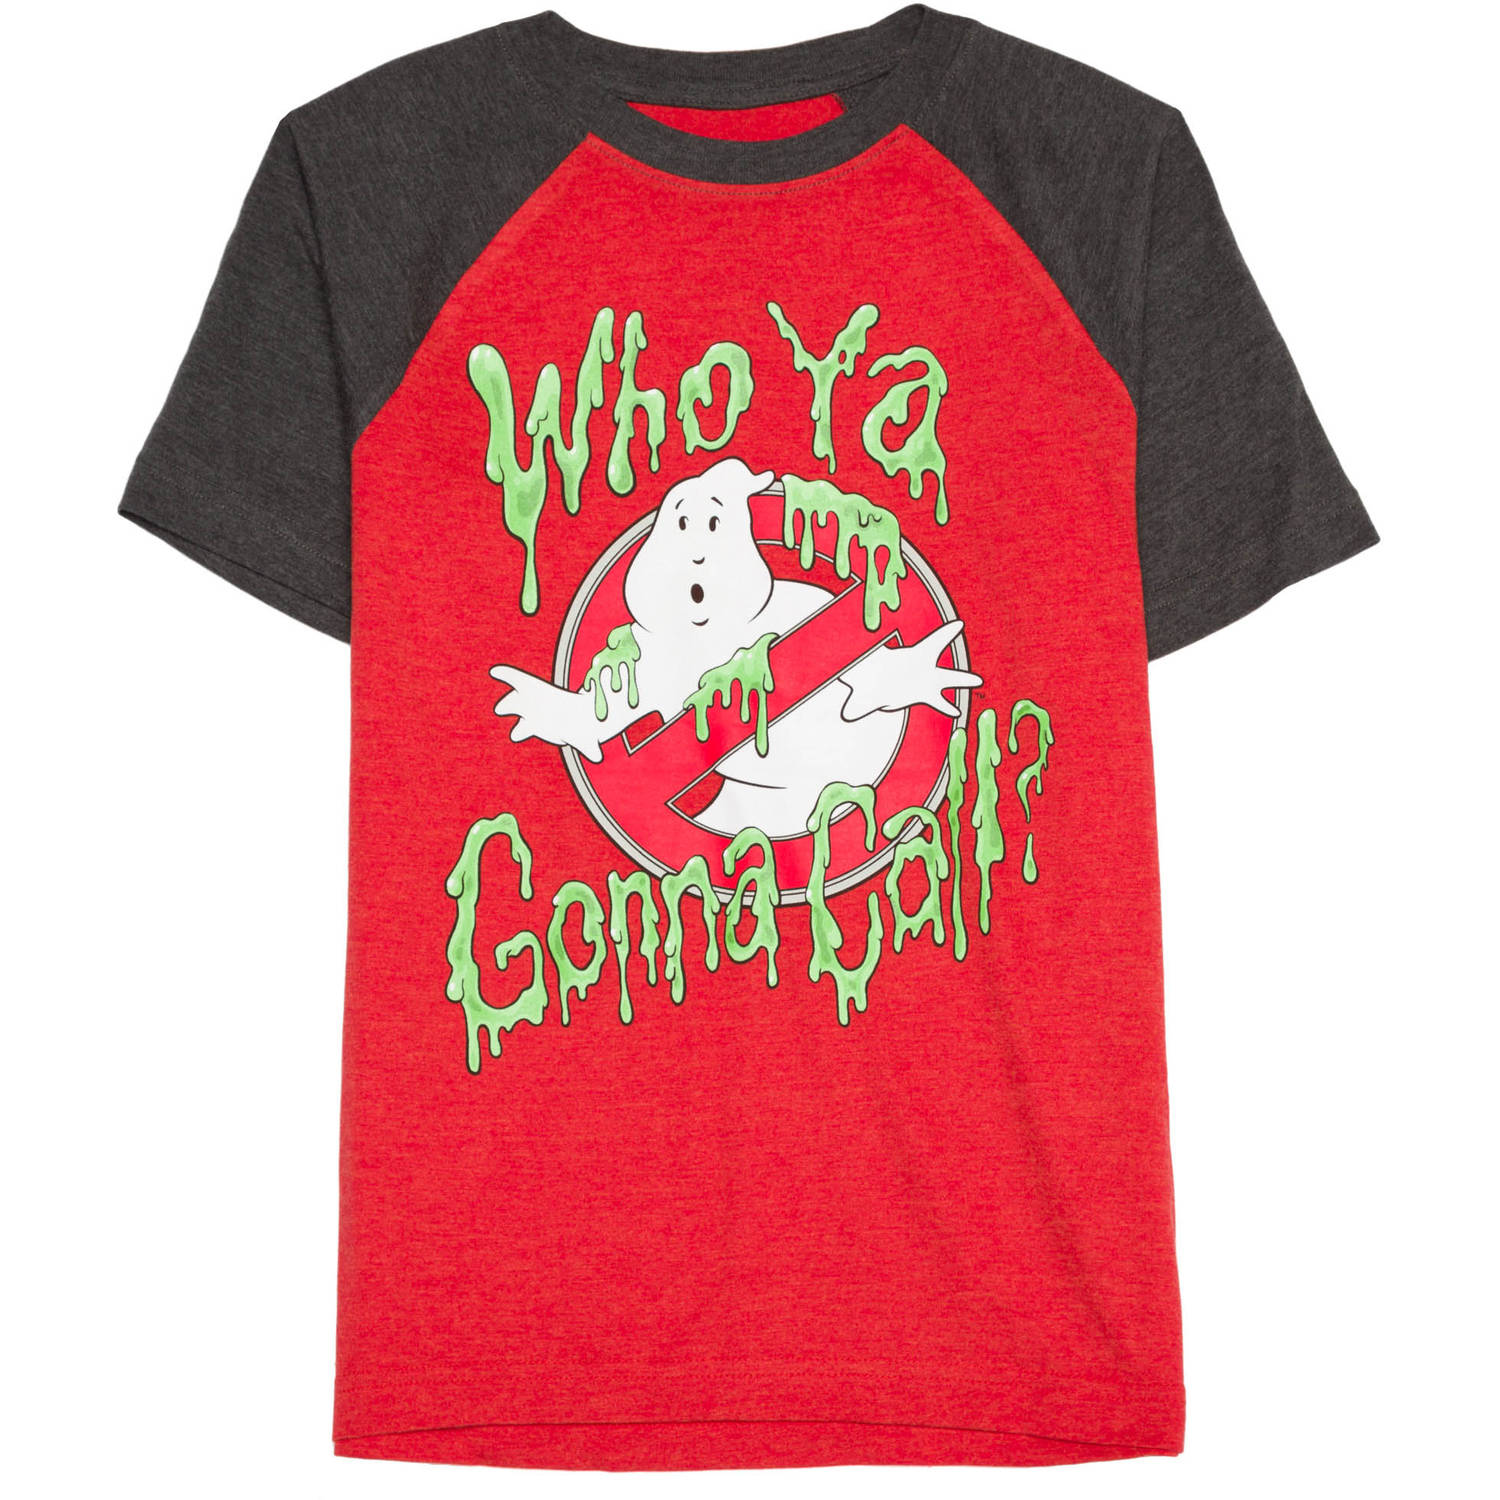 Ghostbusters Boys Gonna Call Graphic Tee